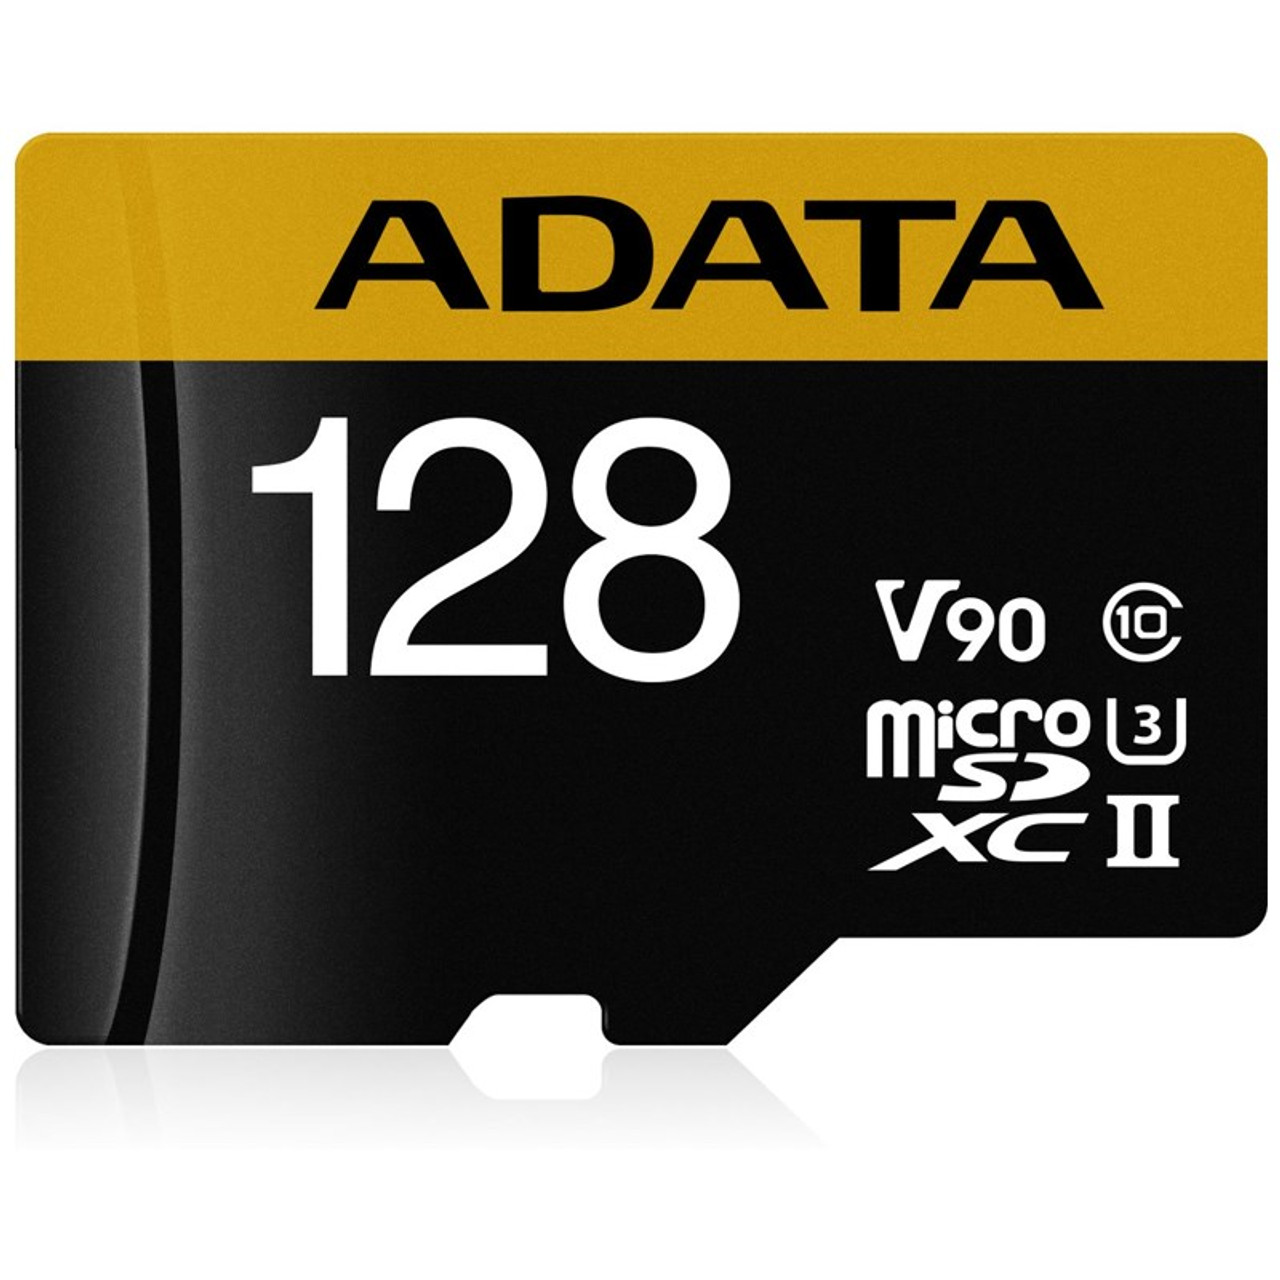 Image for Adata 128GB Premier ONE microSDXC UHS-II Memory Card with SD Adaptor - 275MB/s CX Computer Superstore